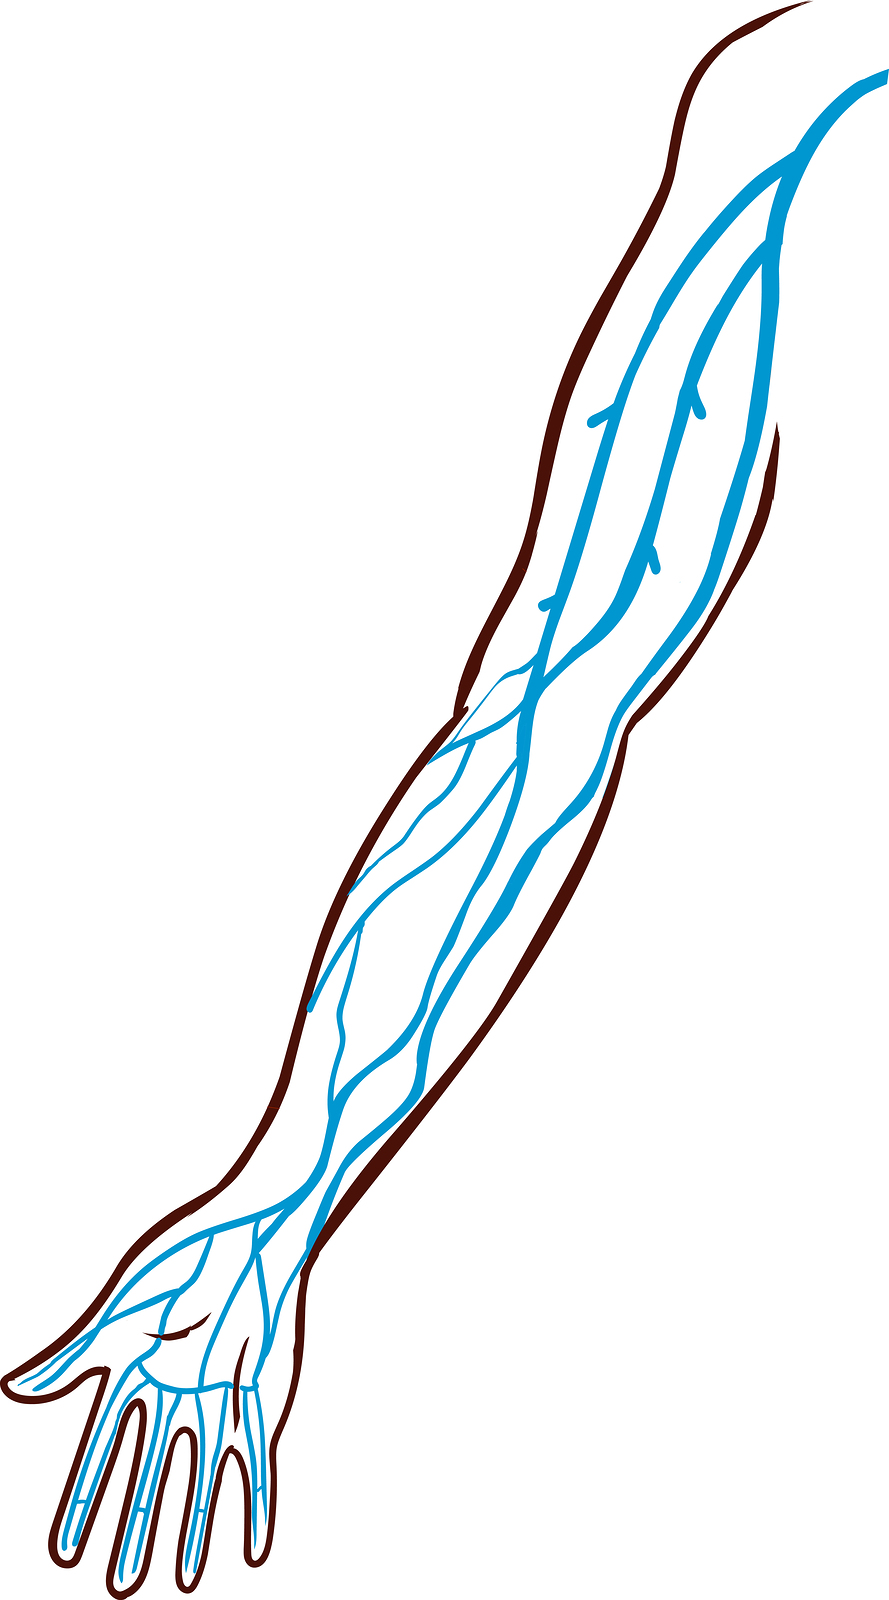 The veins of the arm are visualized.  ©BigStockPhoto